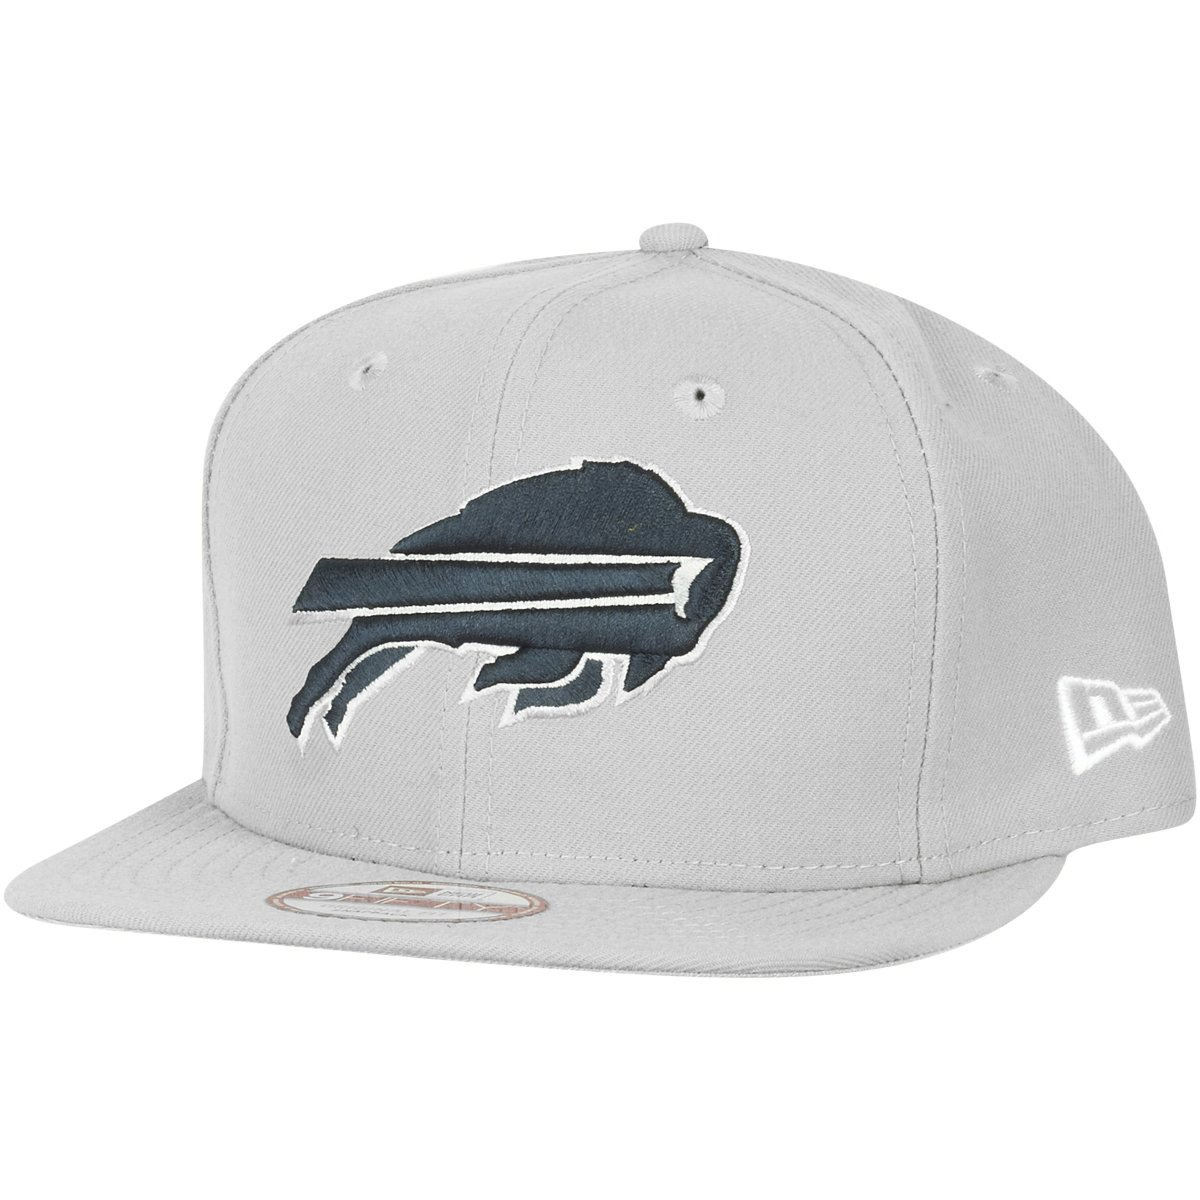 New Era 9Fifty Snapback Cap - NFL Buffalo Bills grey  Amazon.co.uk  Sports    Outdoors f1794b945